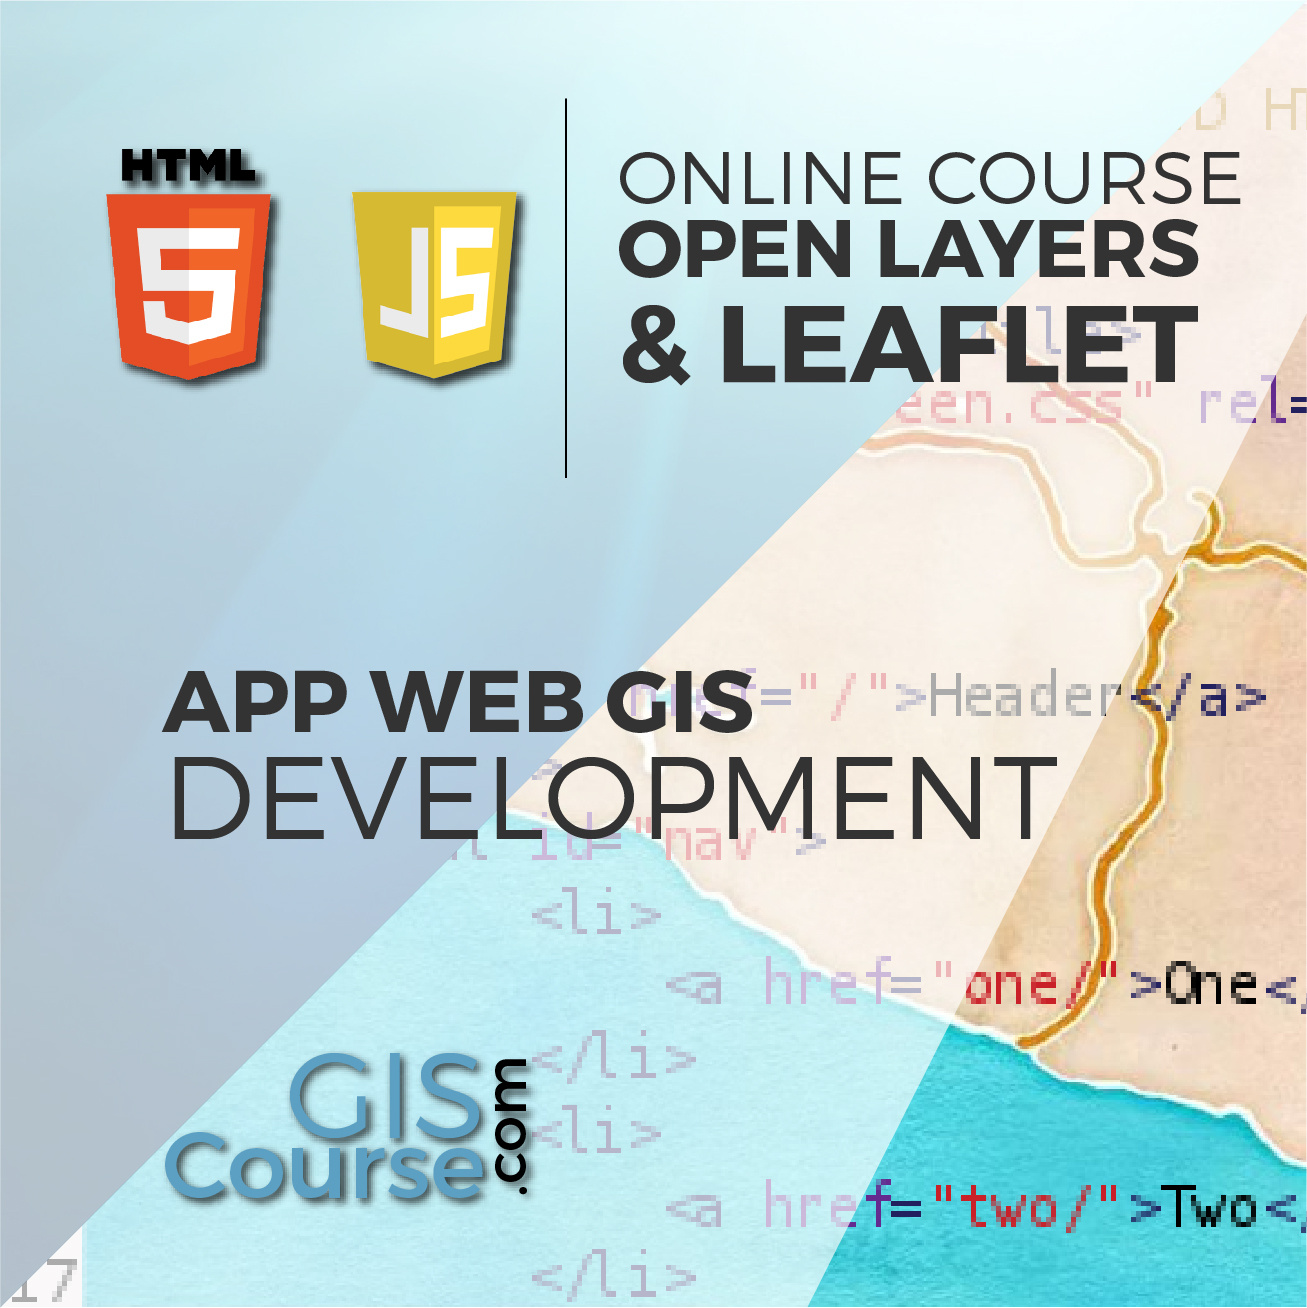 Development of Web Based GIS Applications using Open Layers and Leaflet